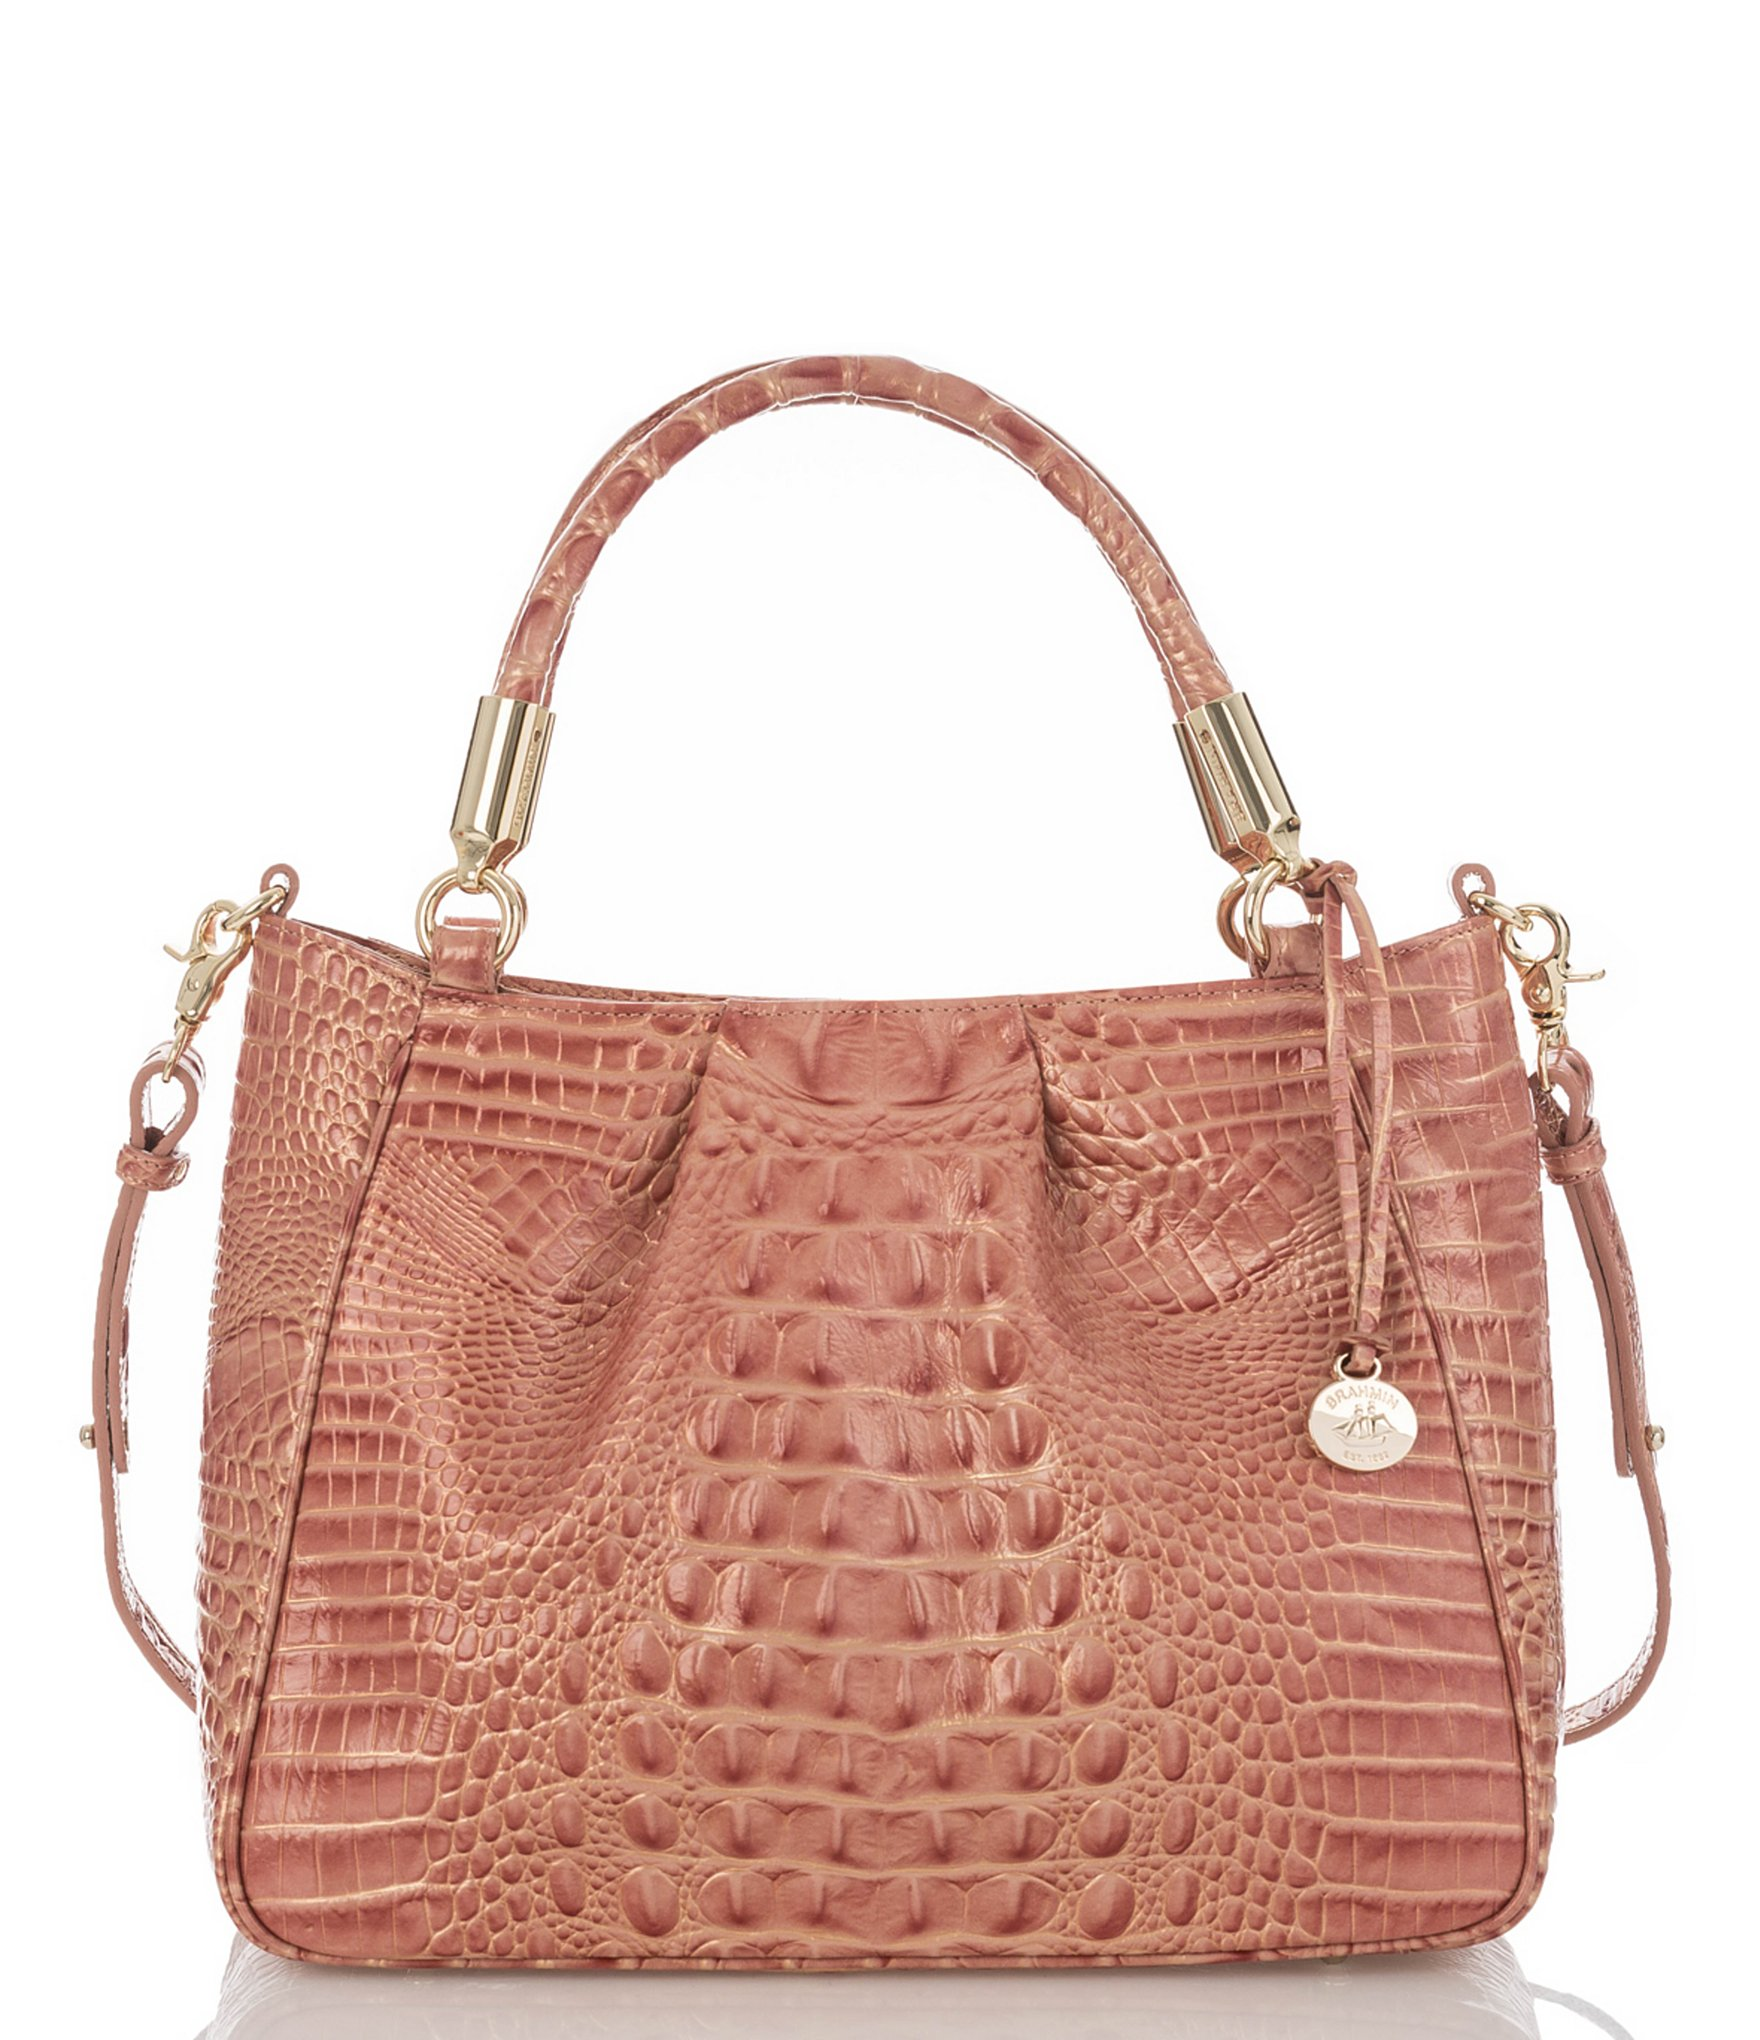 Coach Handbags & Purses Coach Leather Jackets Coach Accessories Coach Signature Totes Coach Shoes Coach Totes Coach Satchels Coach Wallets On Sale View only items on sale. Size. .